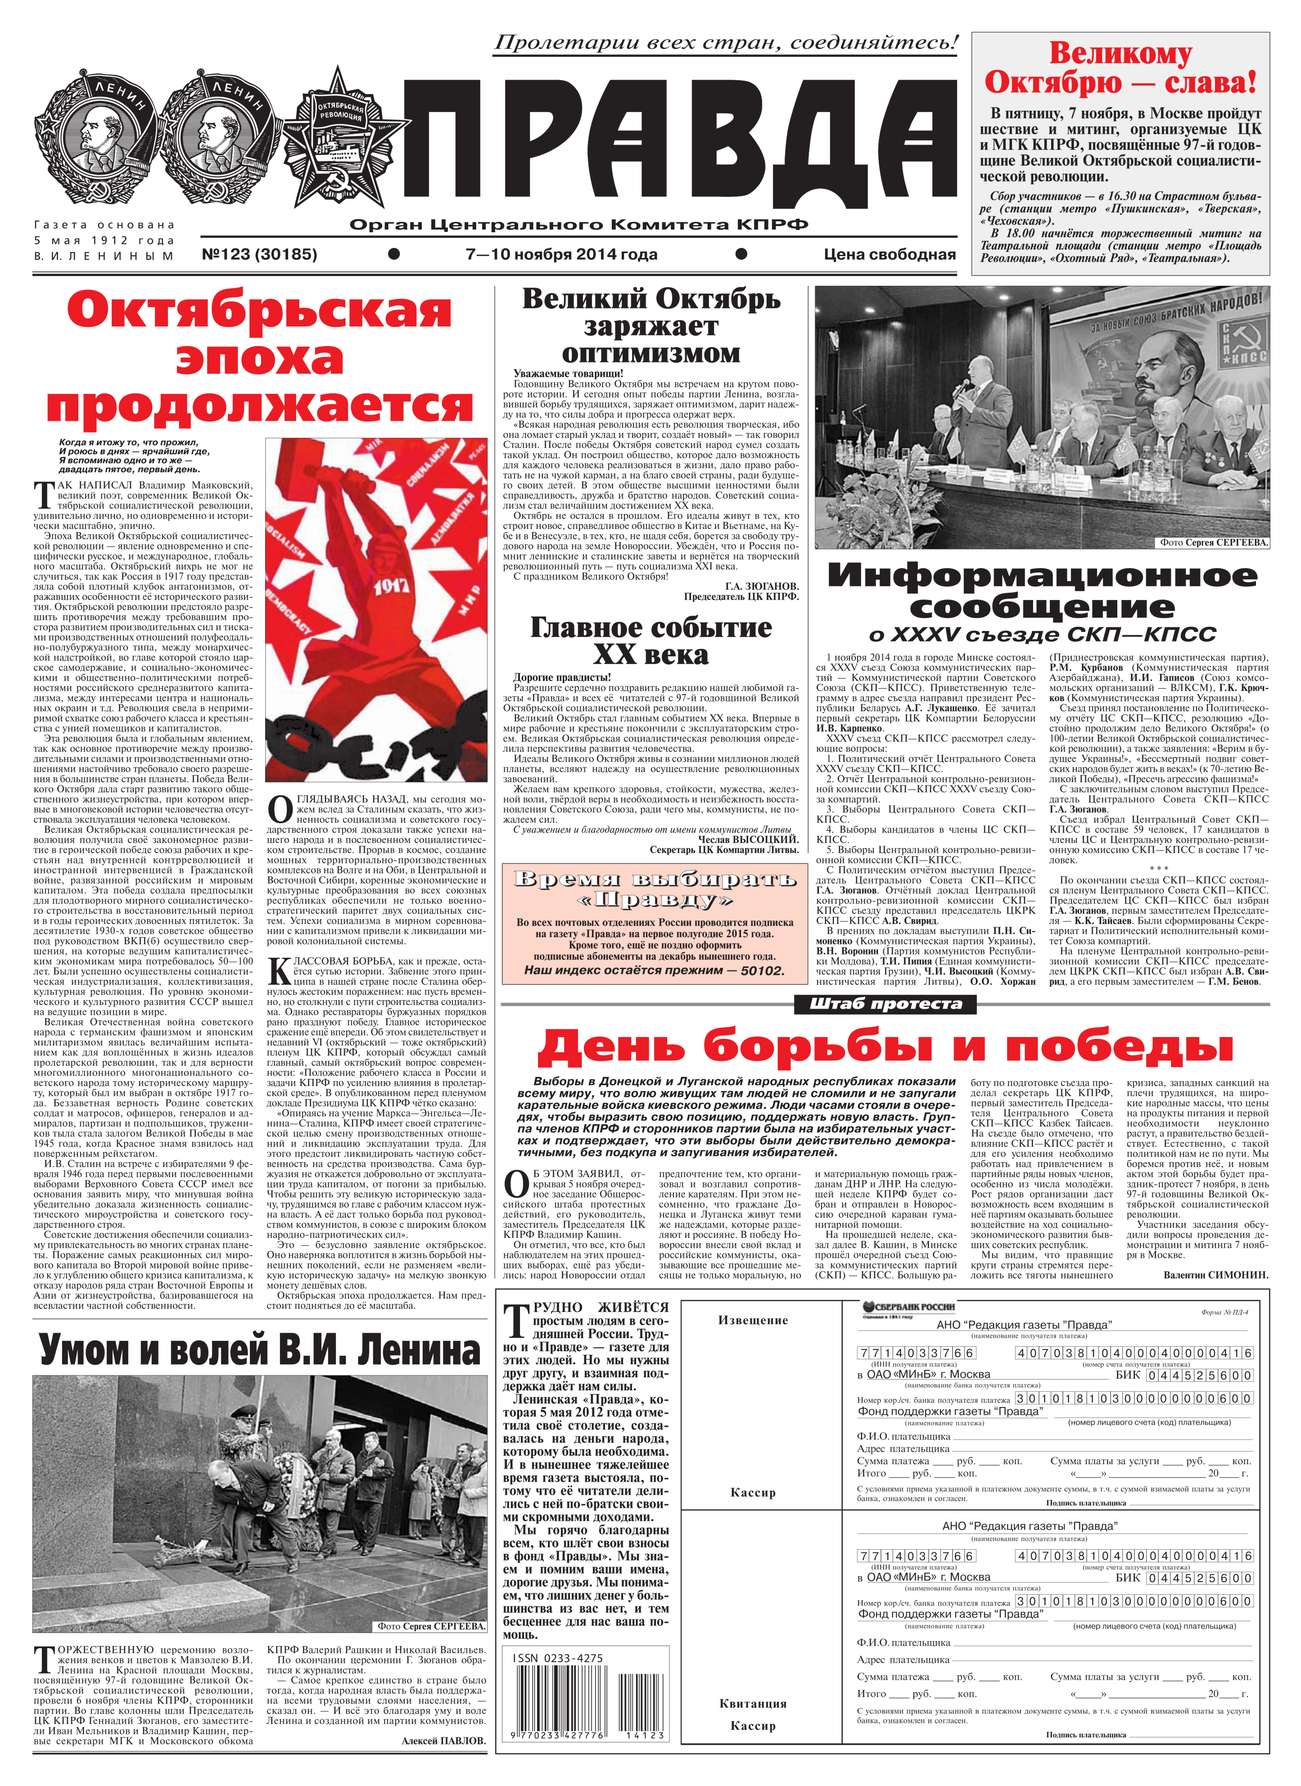 Редакция газеты Правда Правда 123 labor bulletin issues 123 129